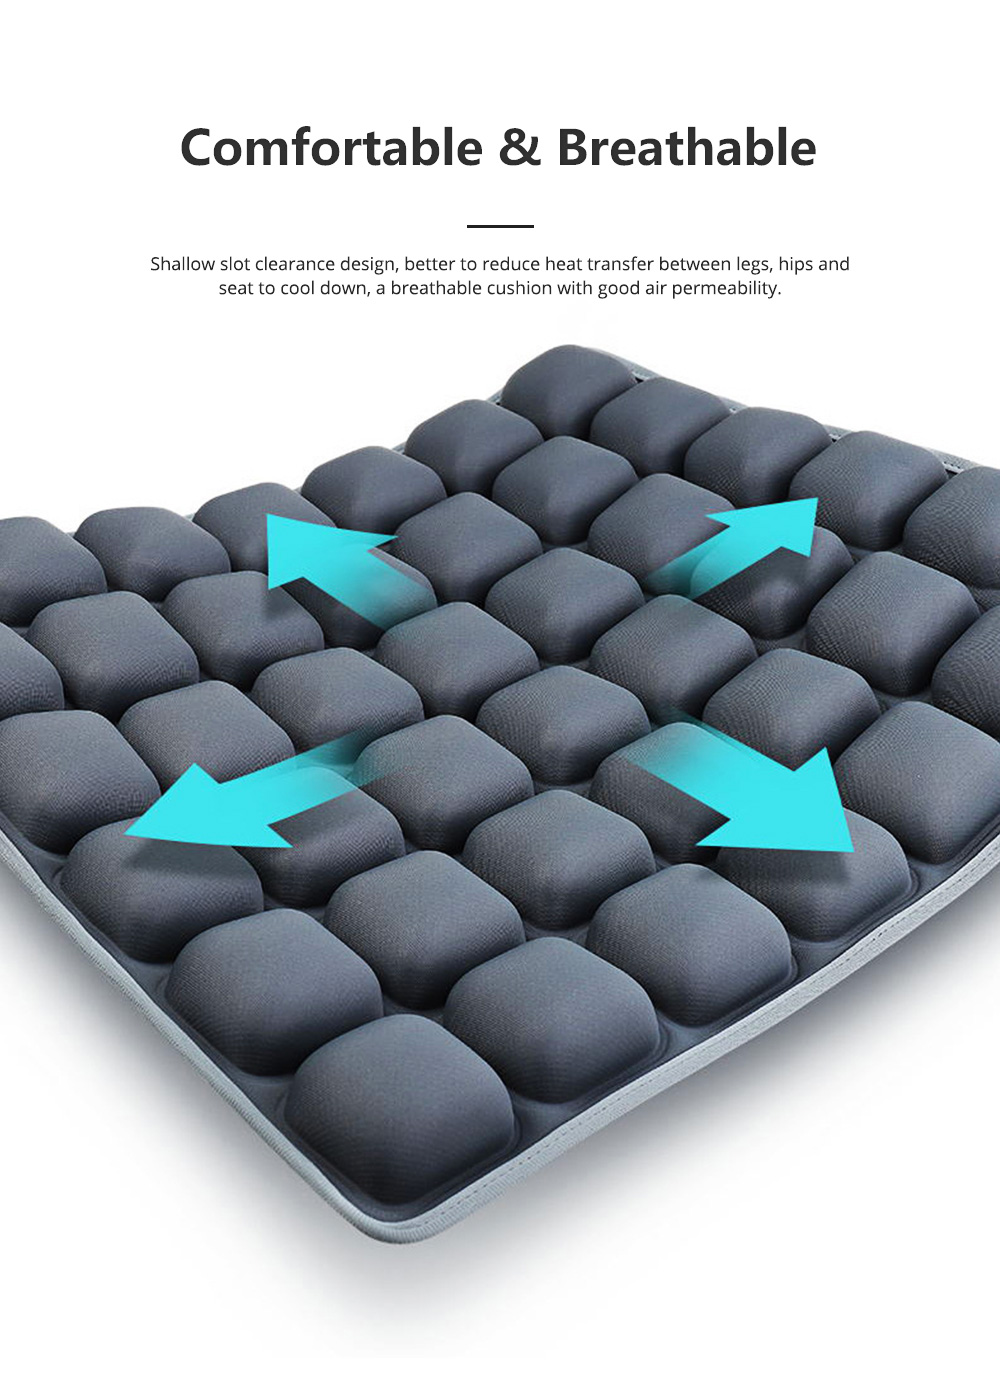 3D Air Bag Seat Cushion for Home Office and Car Use, Back Cushion for Back Pain Relief with Massage Function 3